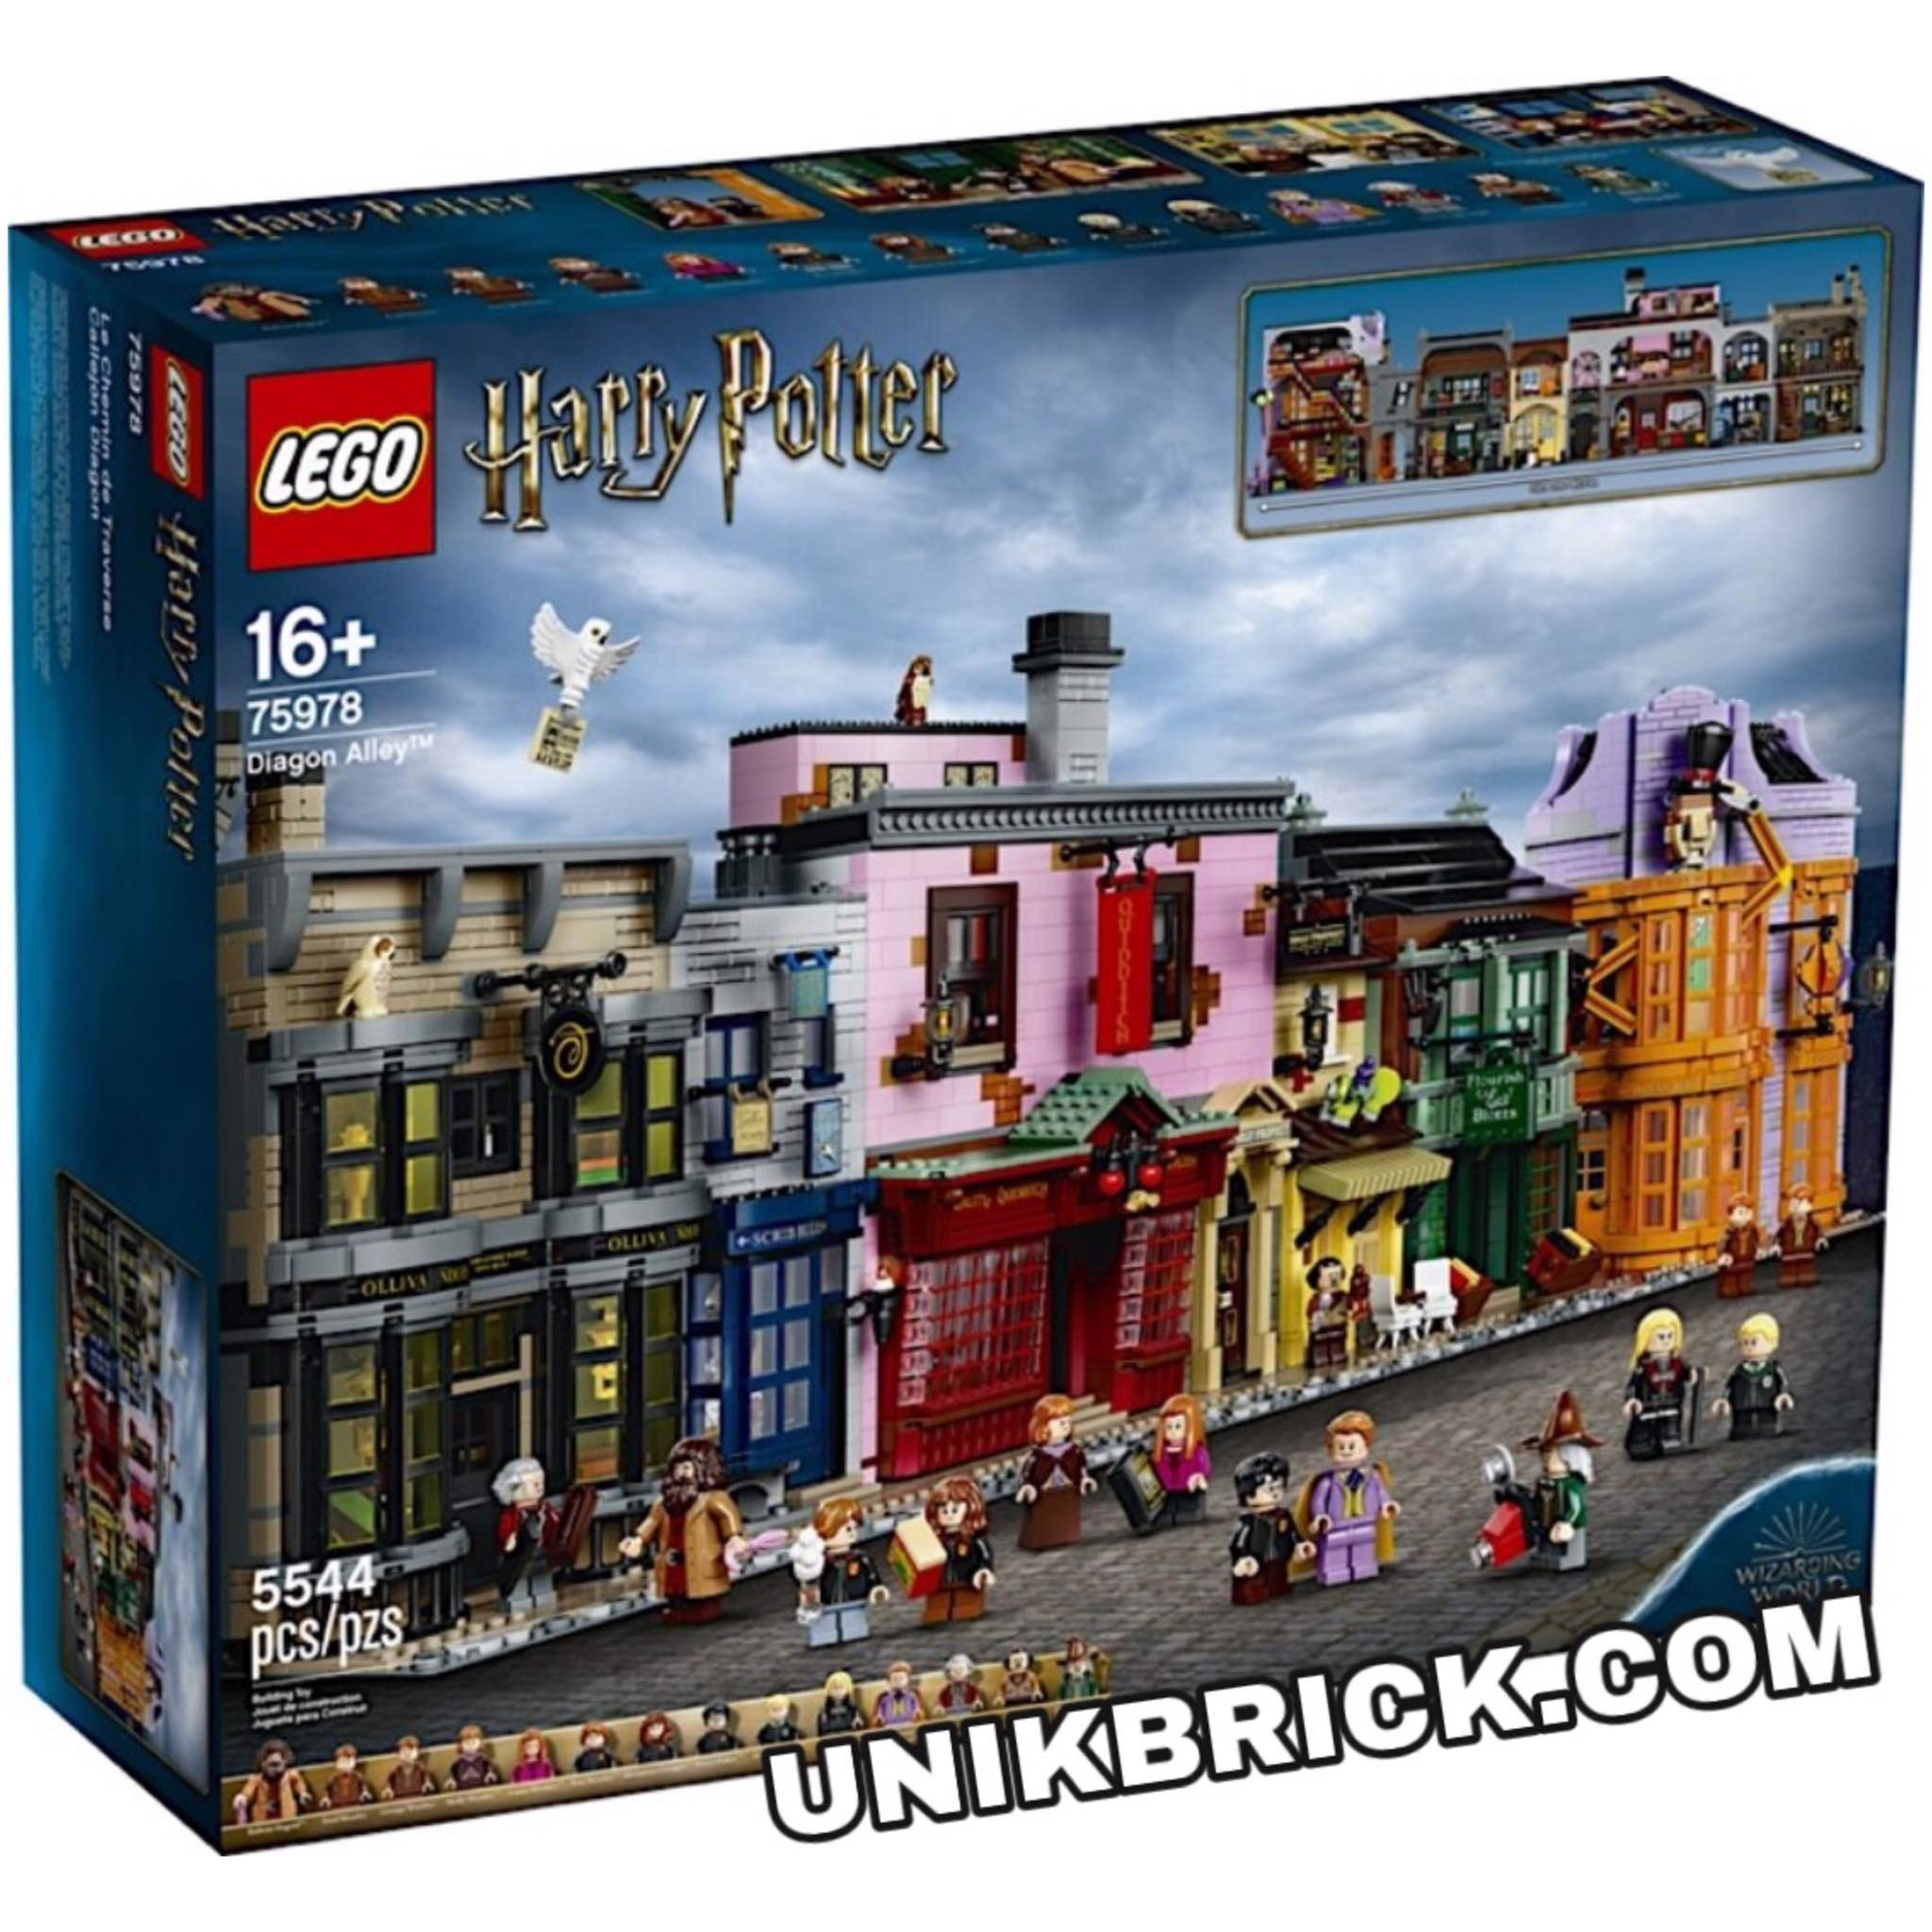 [HÀNG ĐẶT/ORDER] LEGO Harry Potter 75978 Diagon Alley